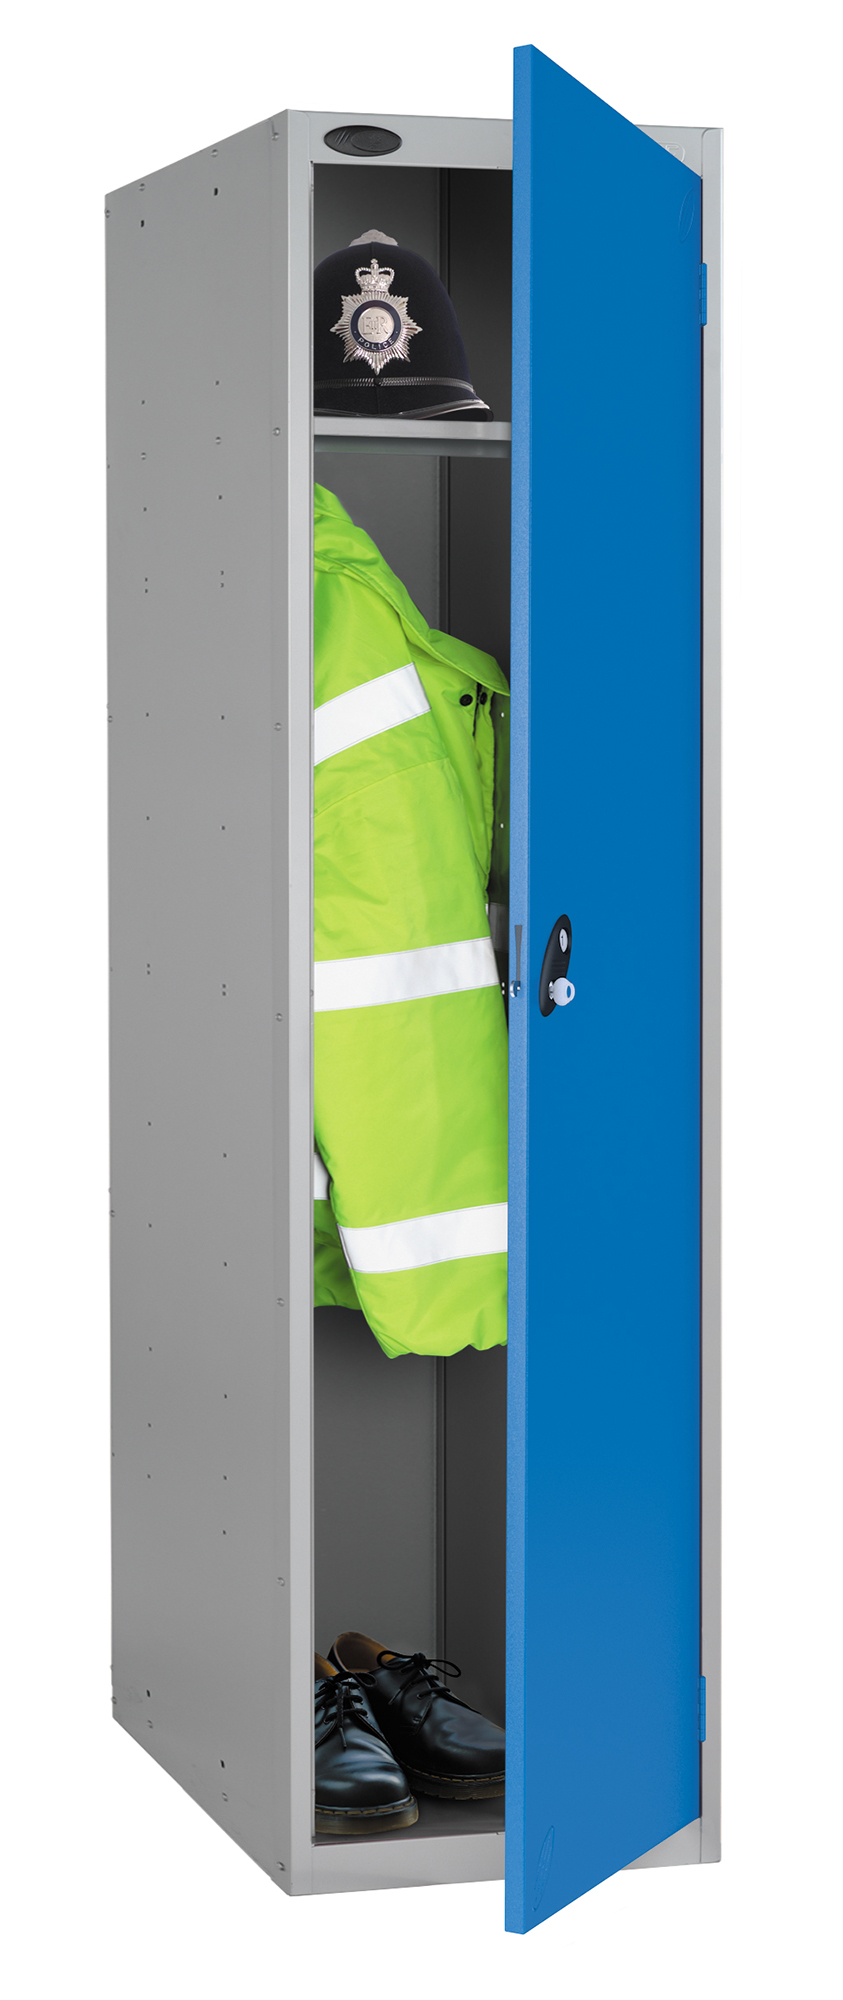 Probe high capacity police locker in blue colour is designed to accommodate personal body armor